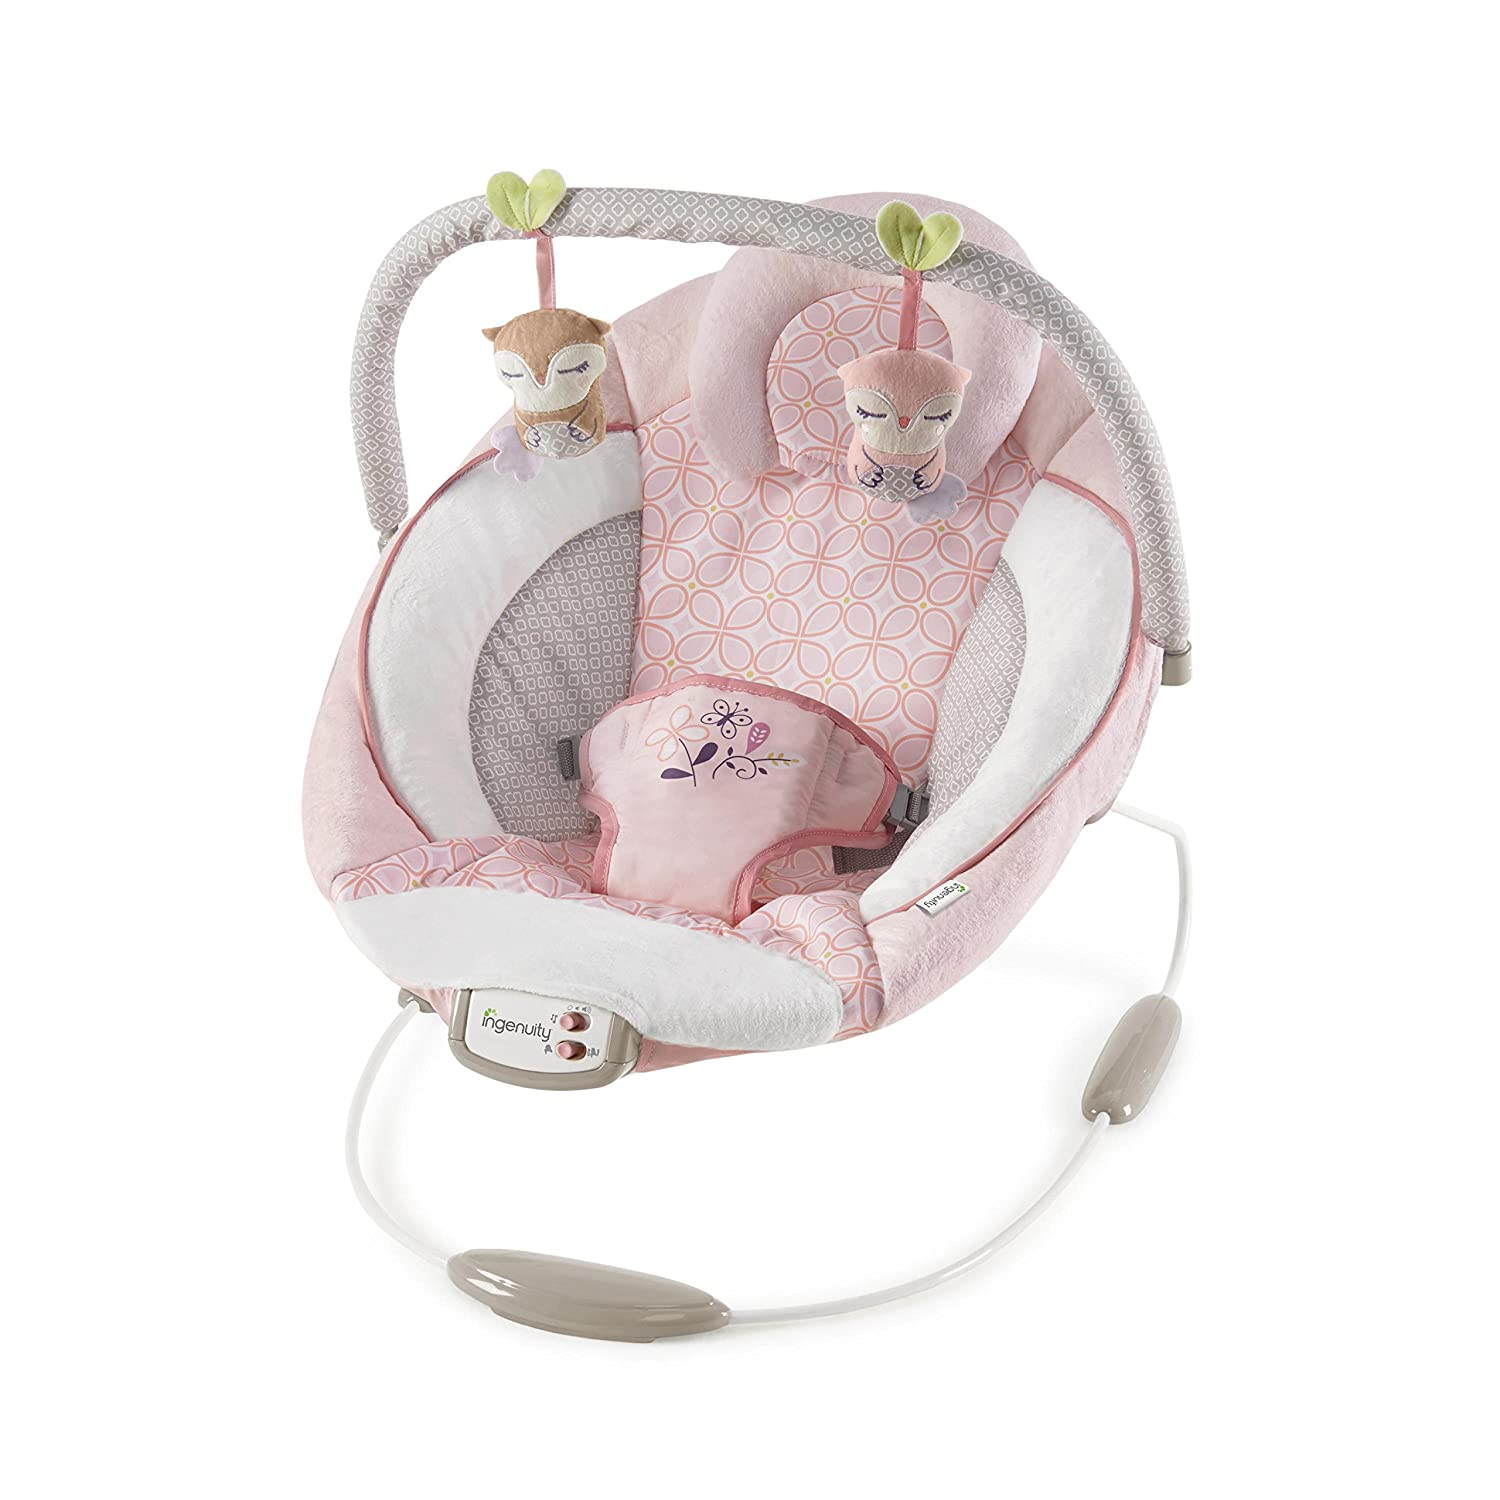 Ingenuity 11202 Cradling Bouncer – Audrey Wippe, rosa Kids II Europe B.V. 11202-3